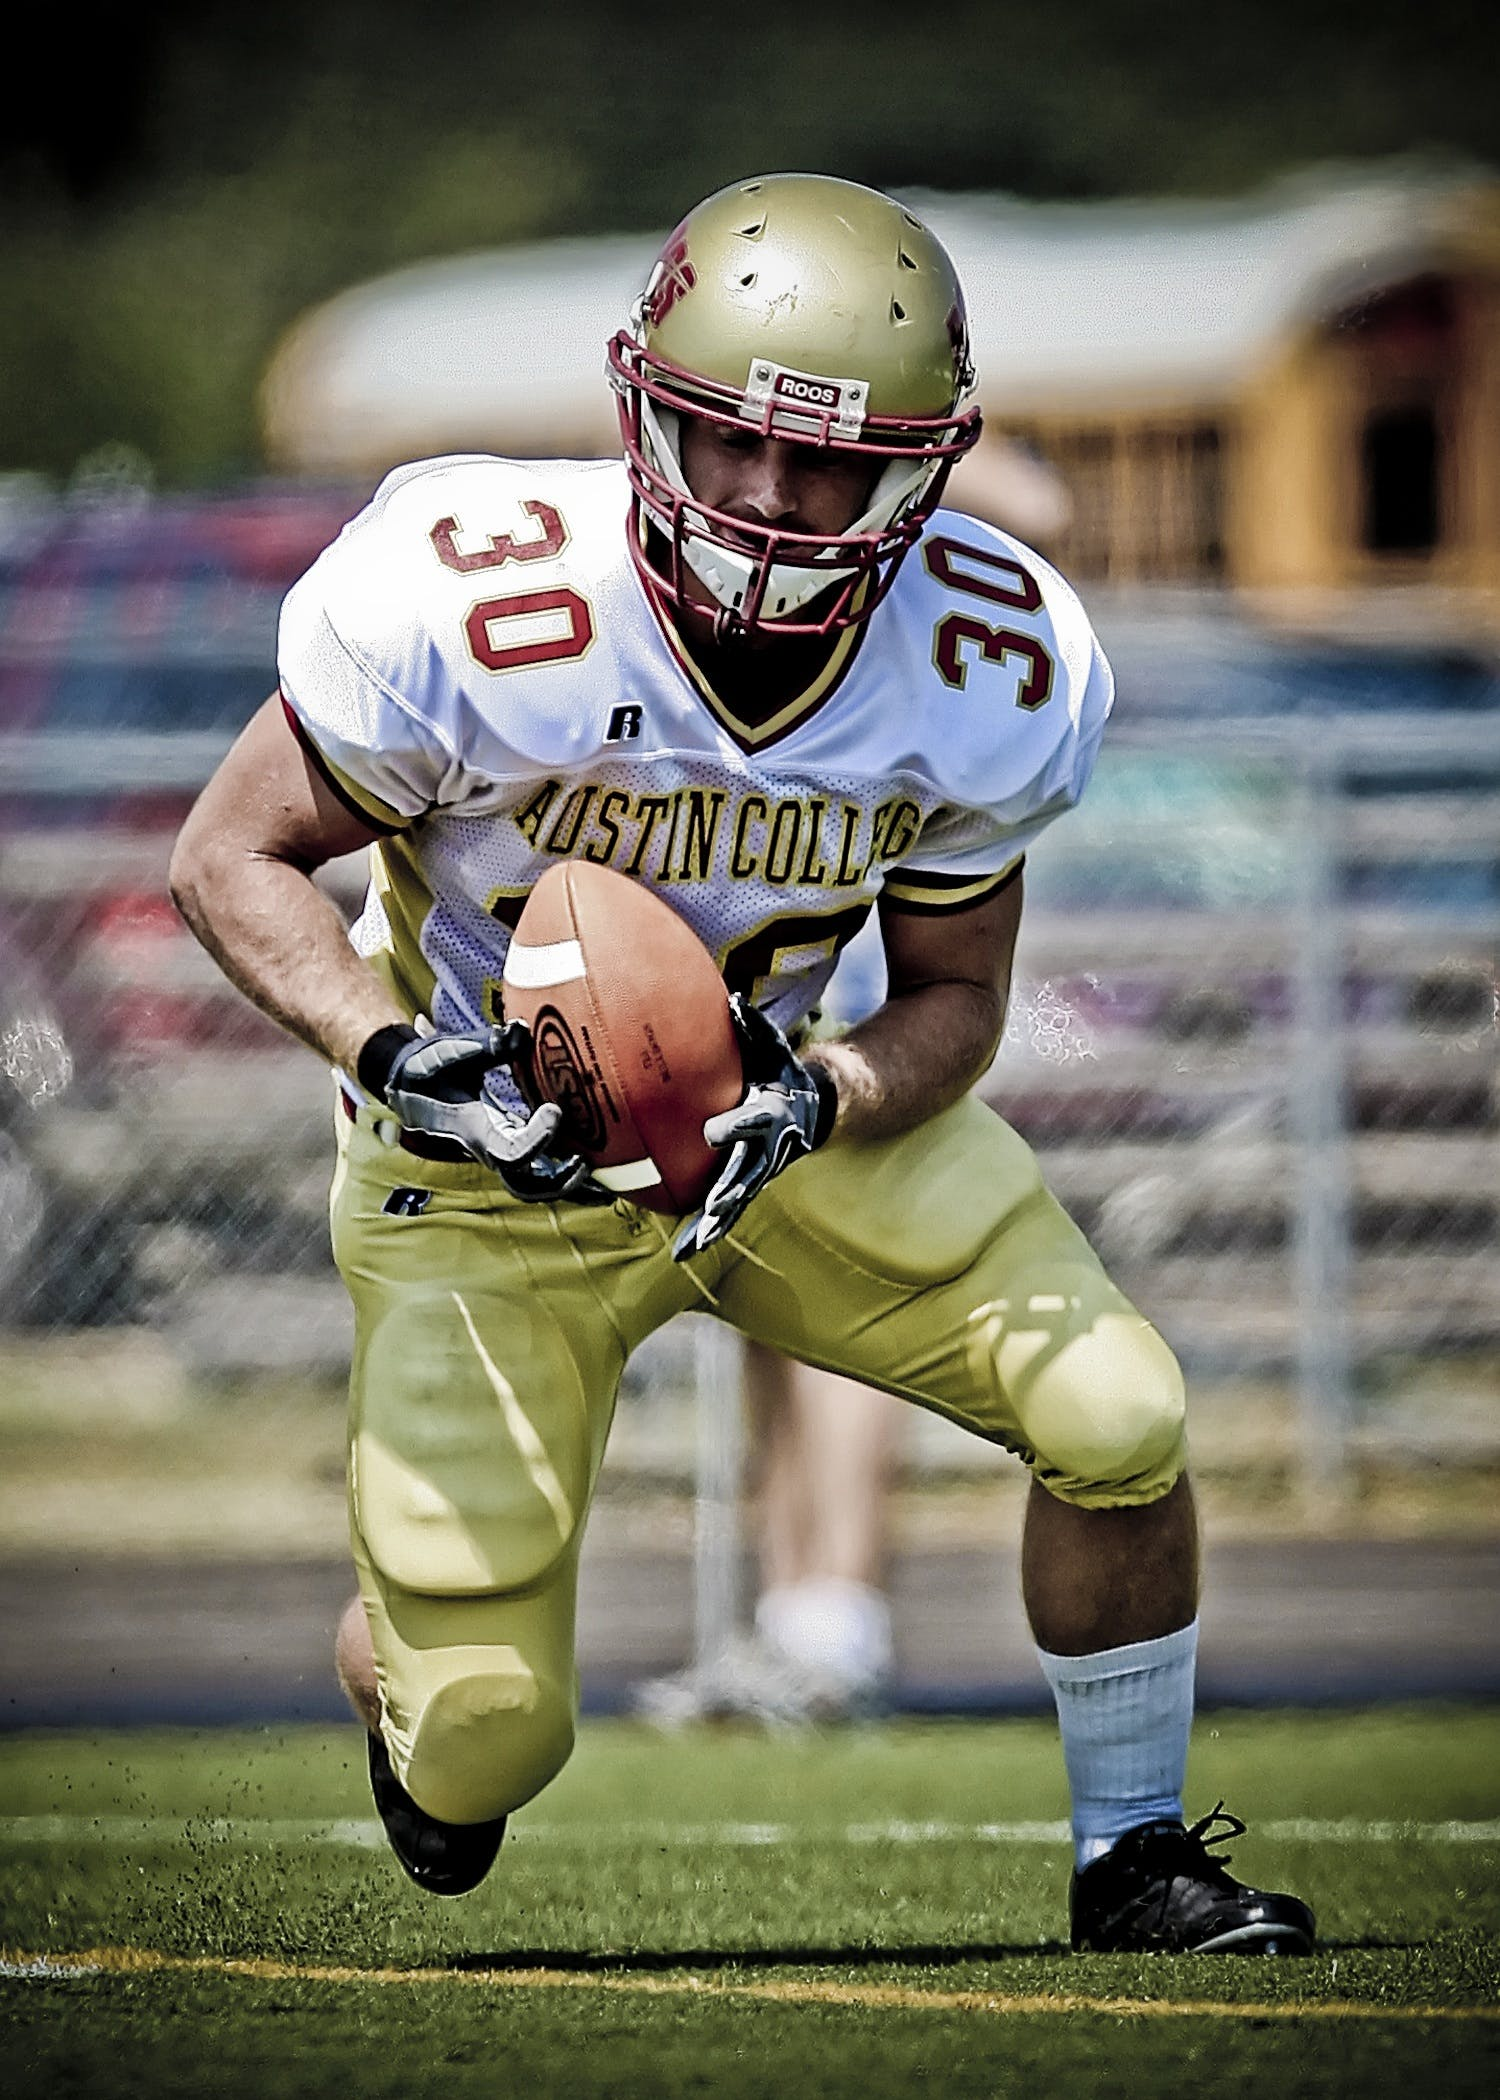 Austin College Football Player Running With Football